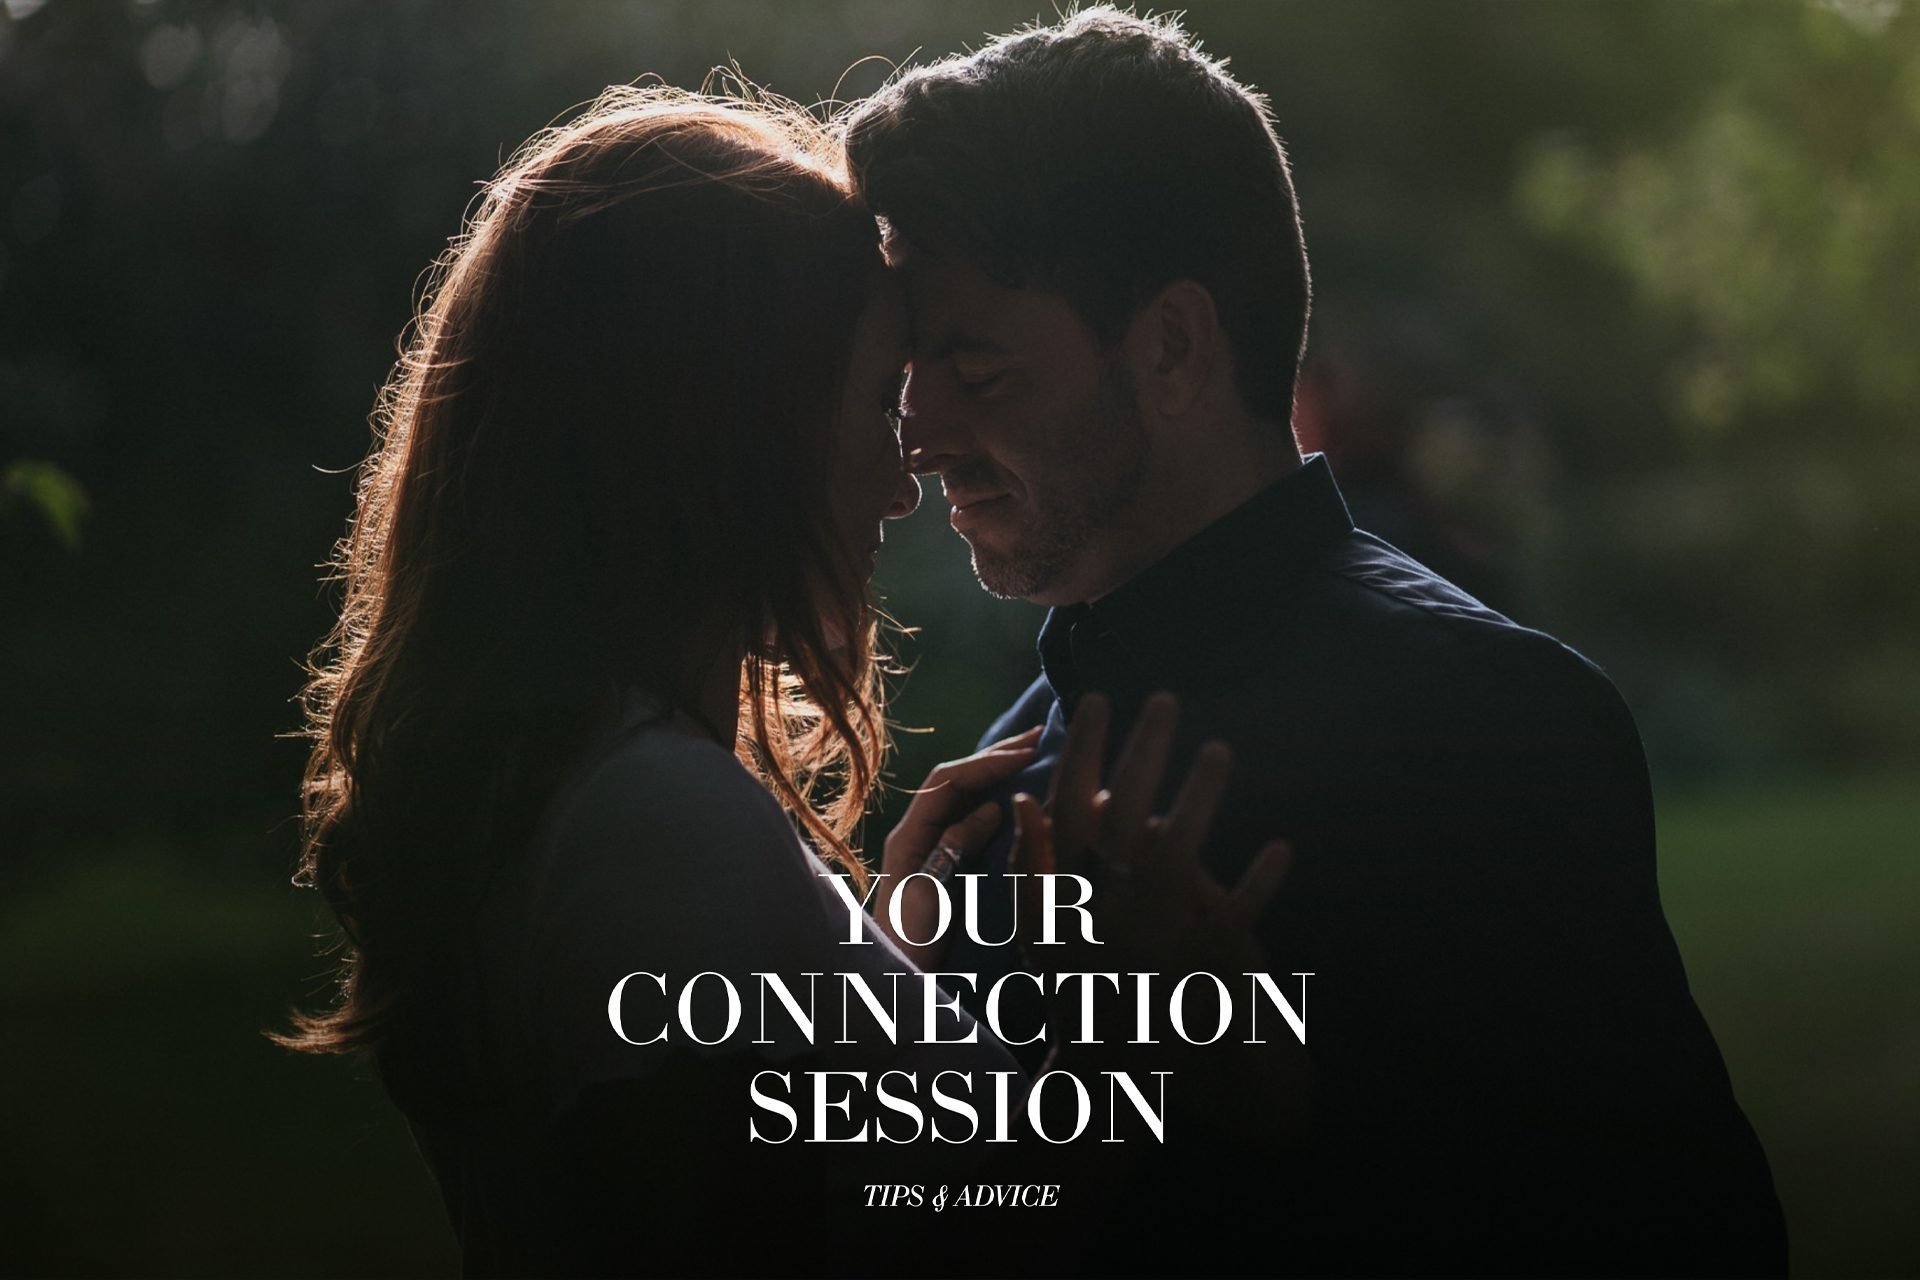 YOUR CONNECTION SESSION